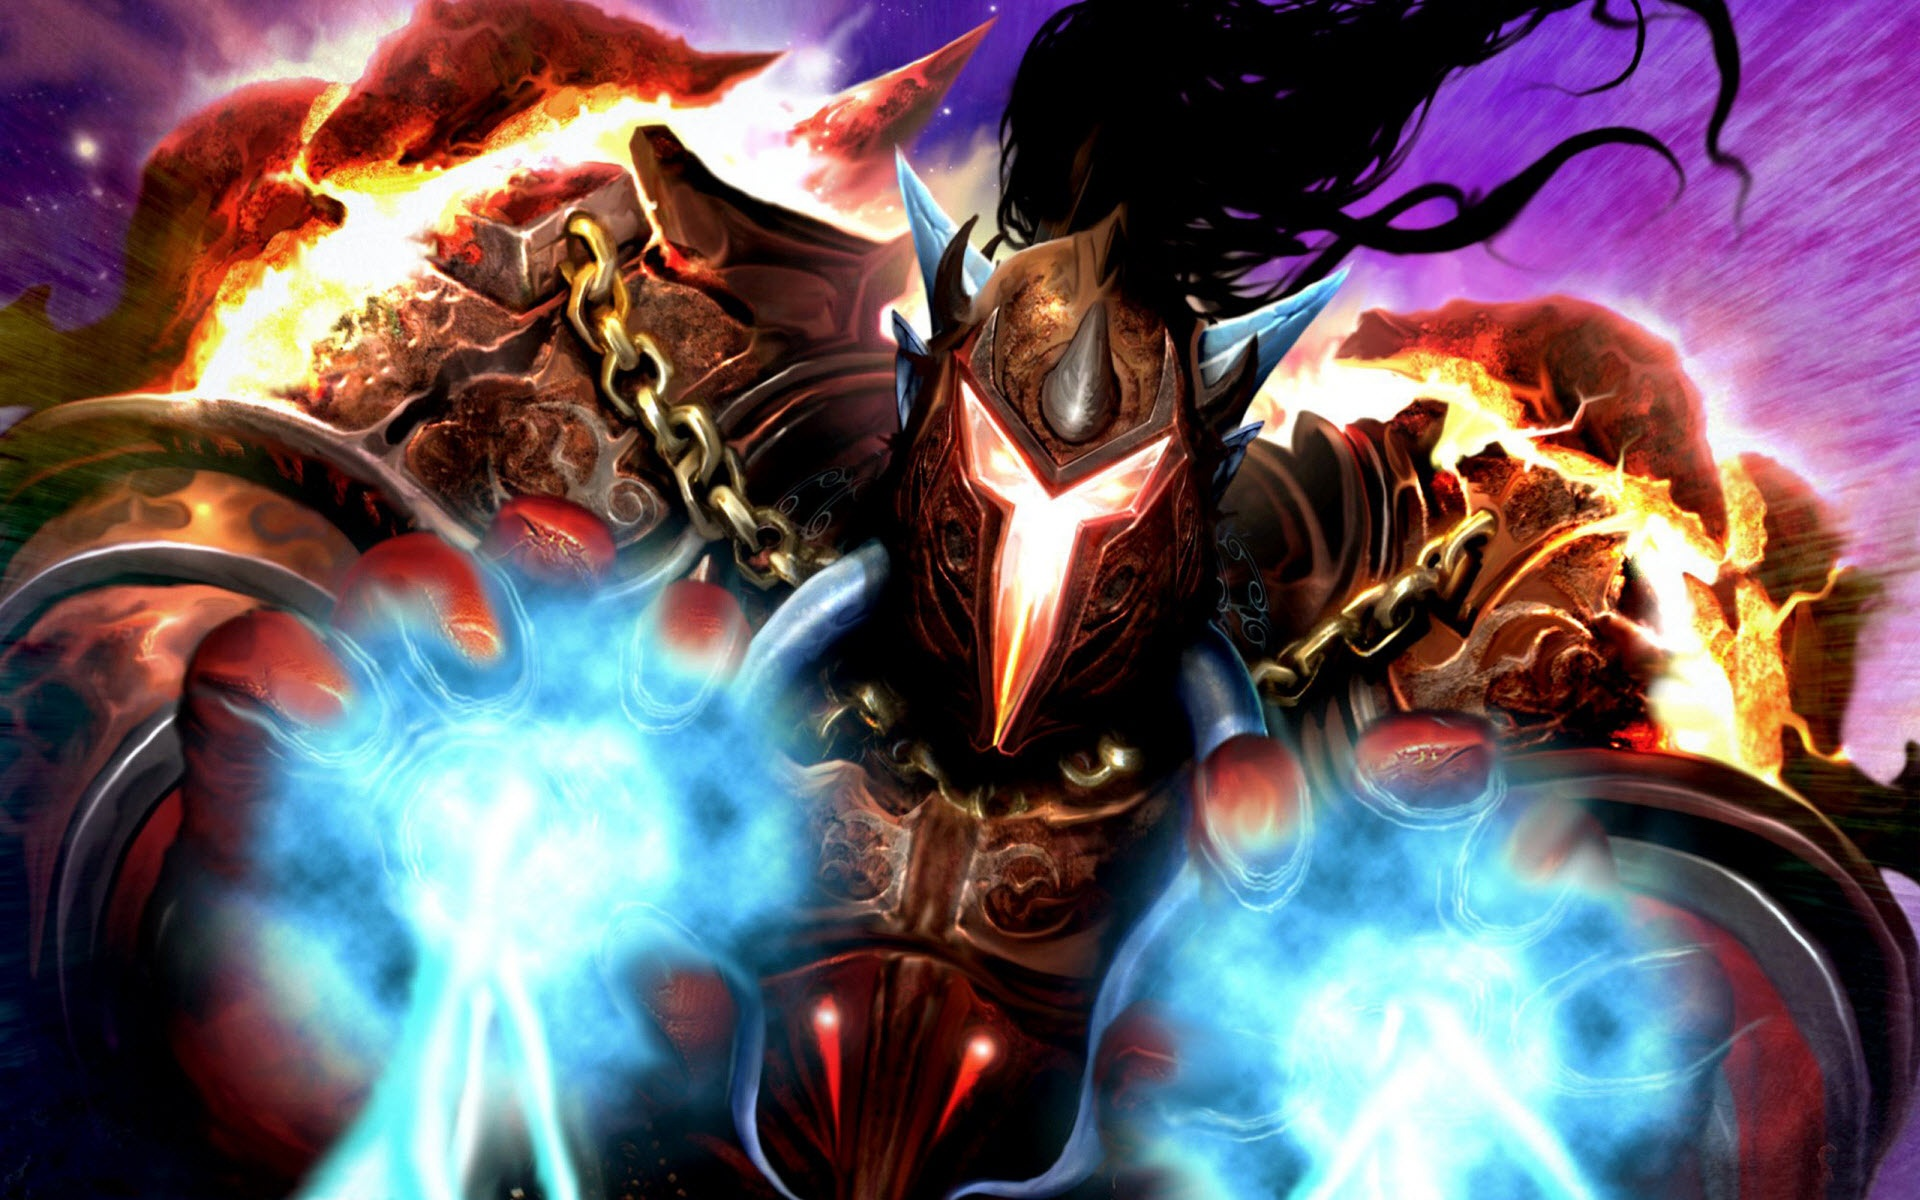 World Of Warcraft Hd Wallpapers Free Download Wallpaperxyz - Wow Wallpaper Fan Art , HD Wallpaper & Backgrounds